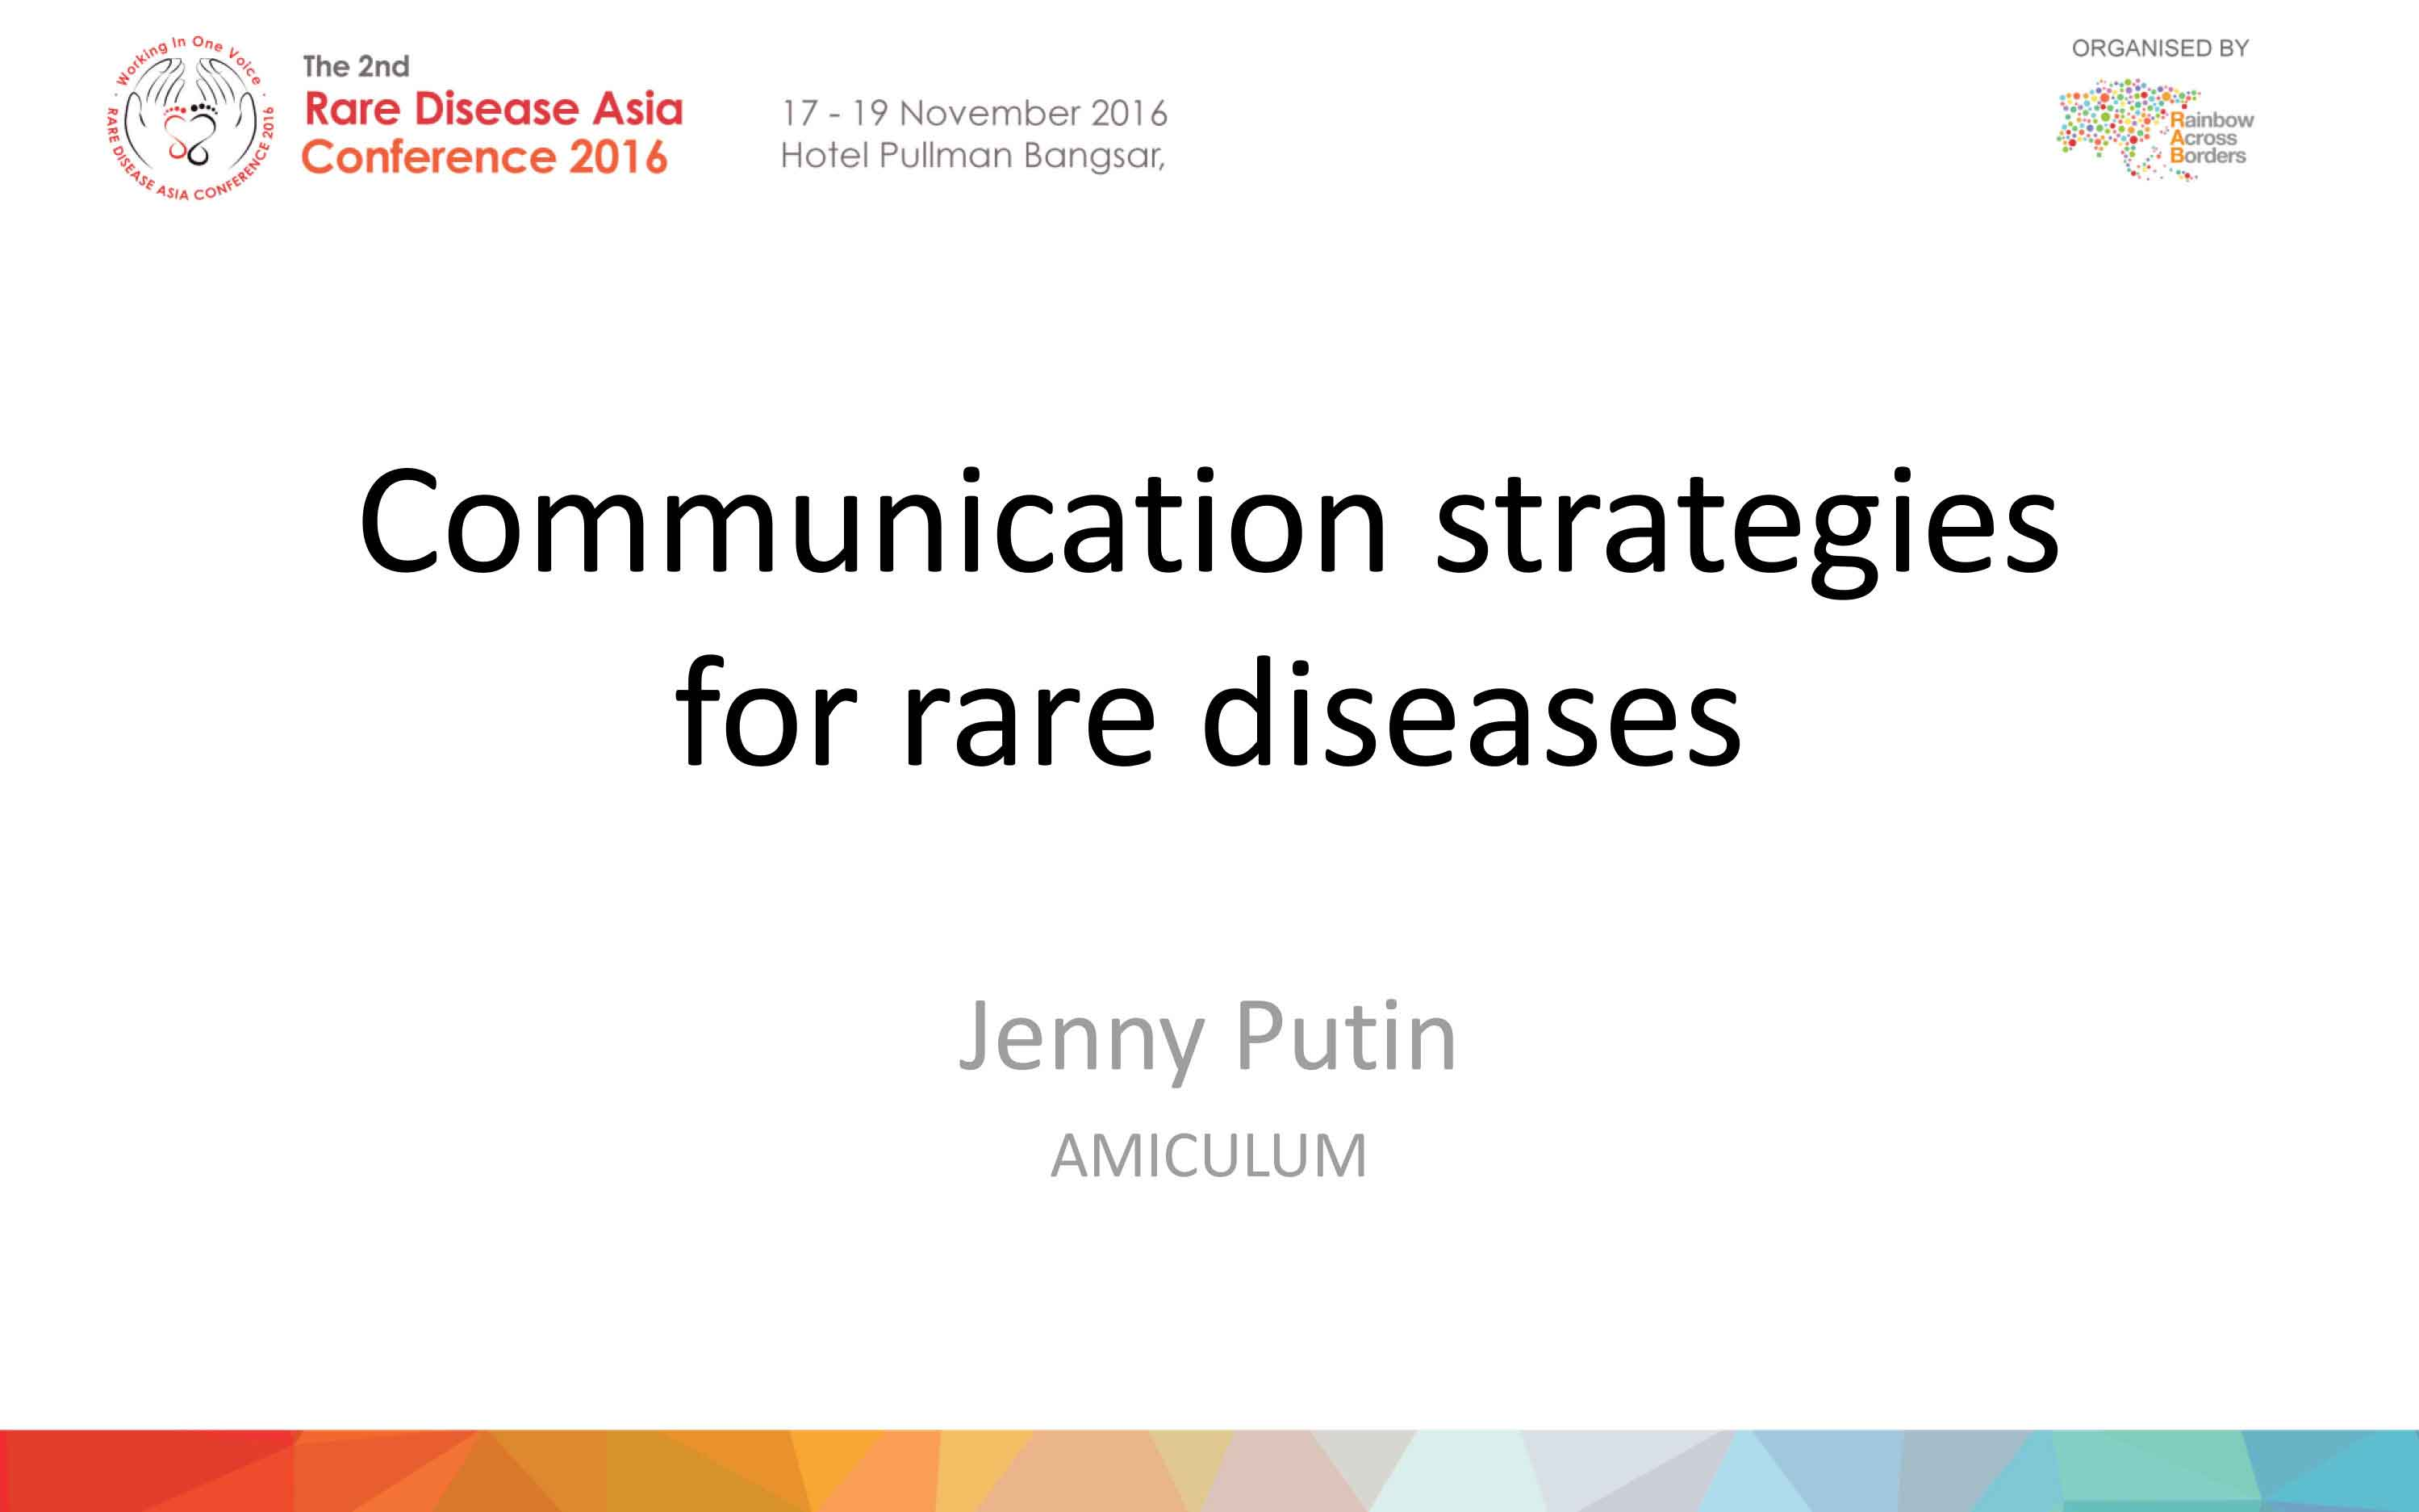 Jenny Putin (AMICULUM) - Communication Strategies for Rare Diseases